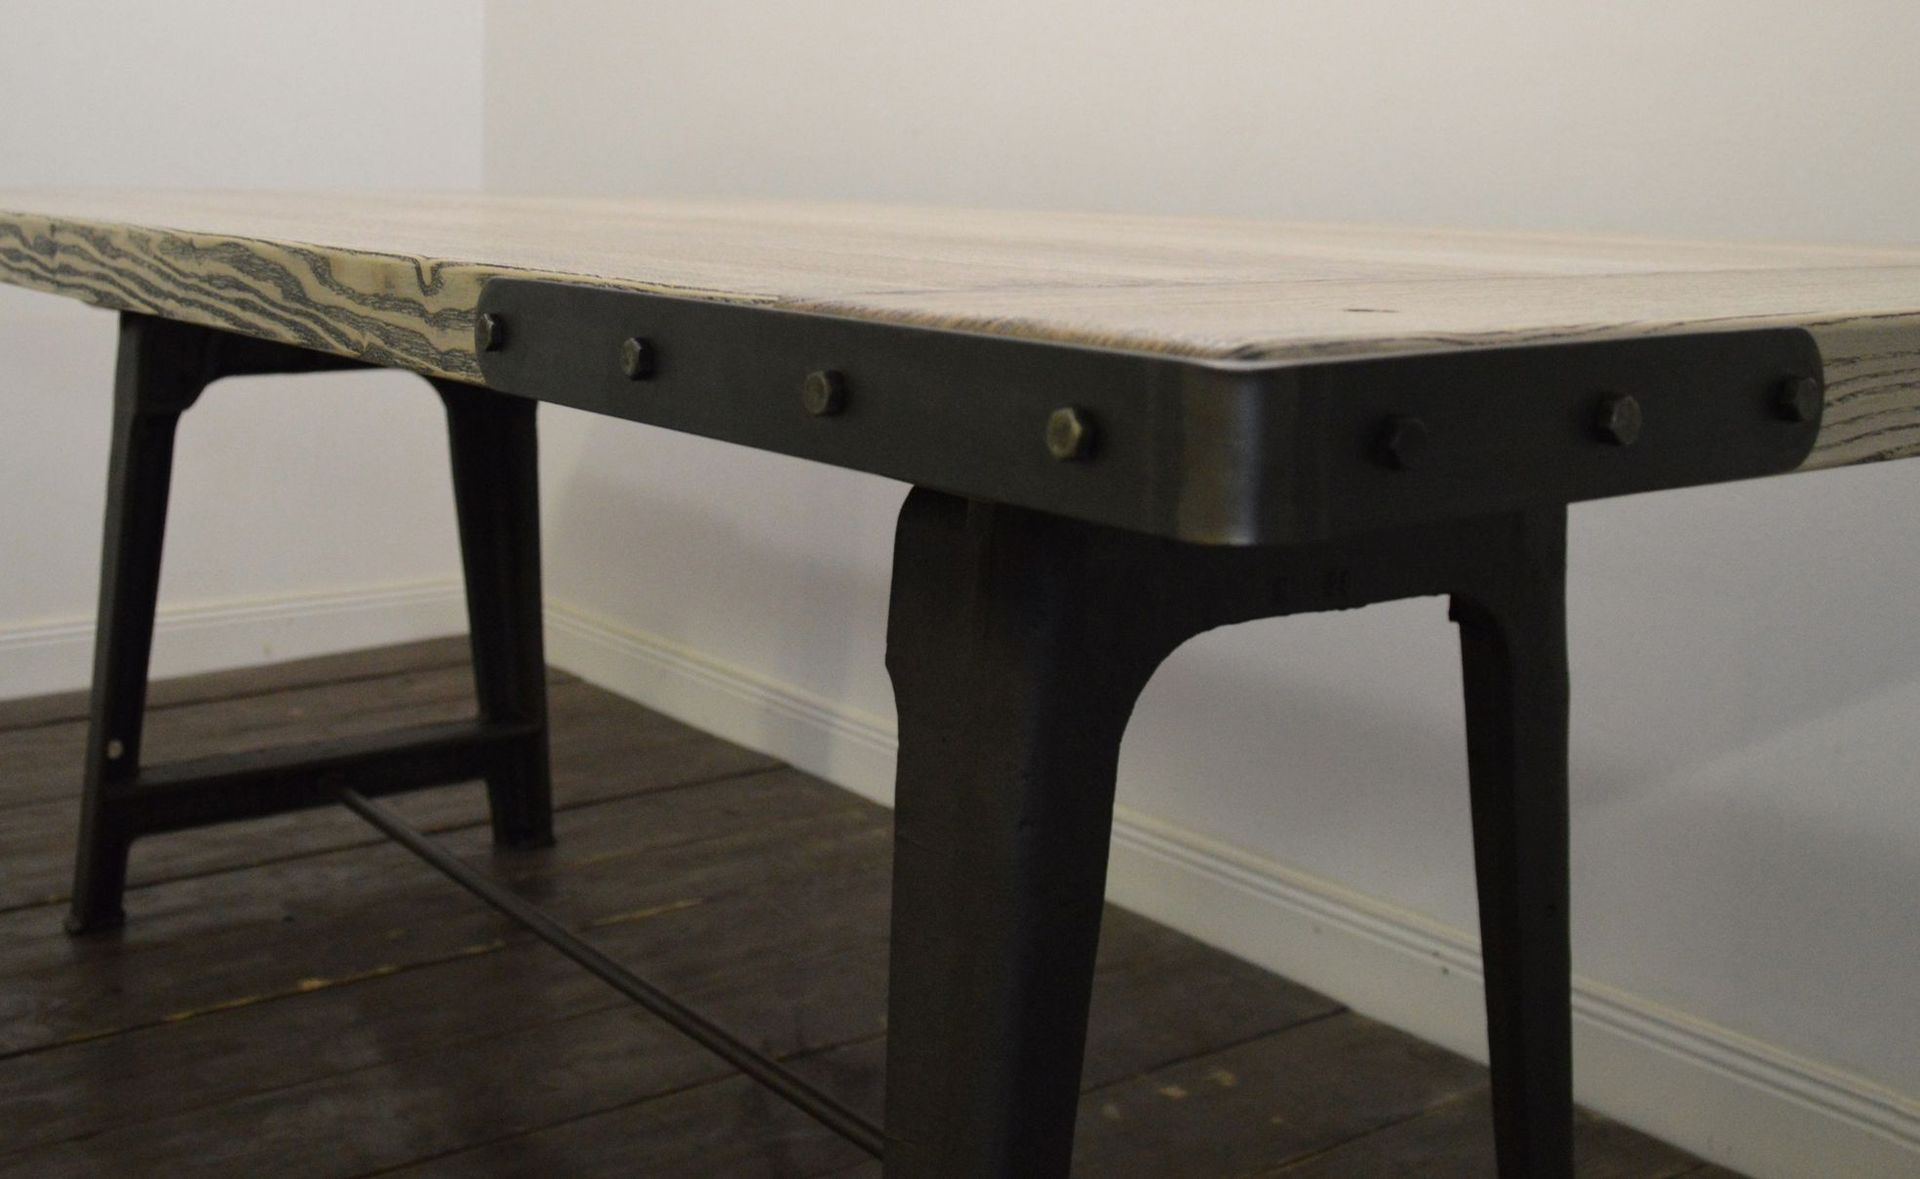 Grande table de salle manger industrielle en fr ne en vente sur pamono for Grande table industrielle